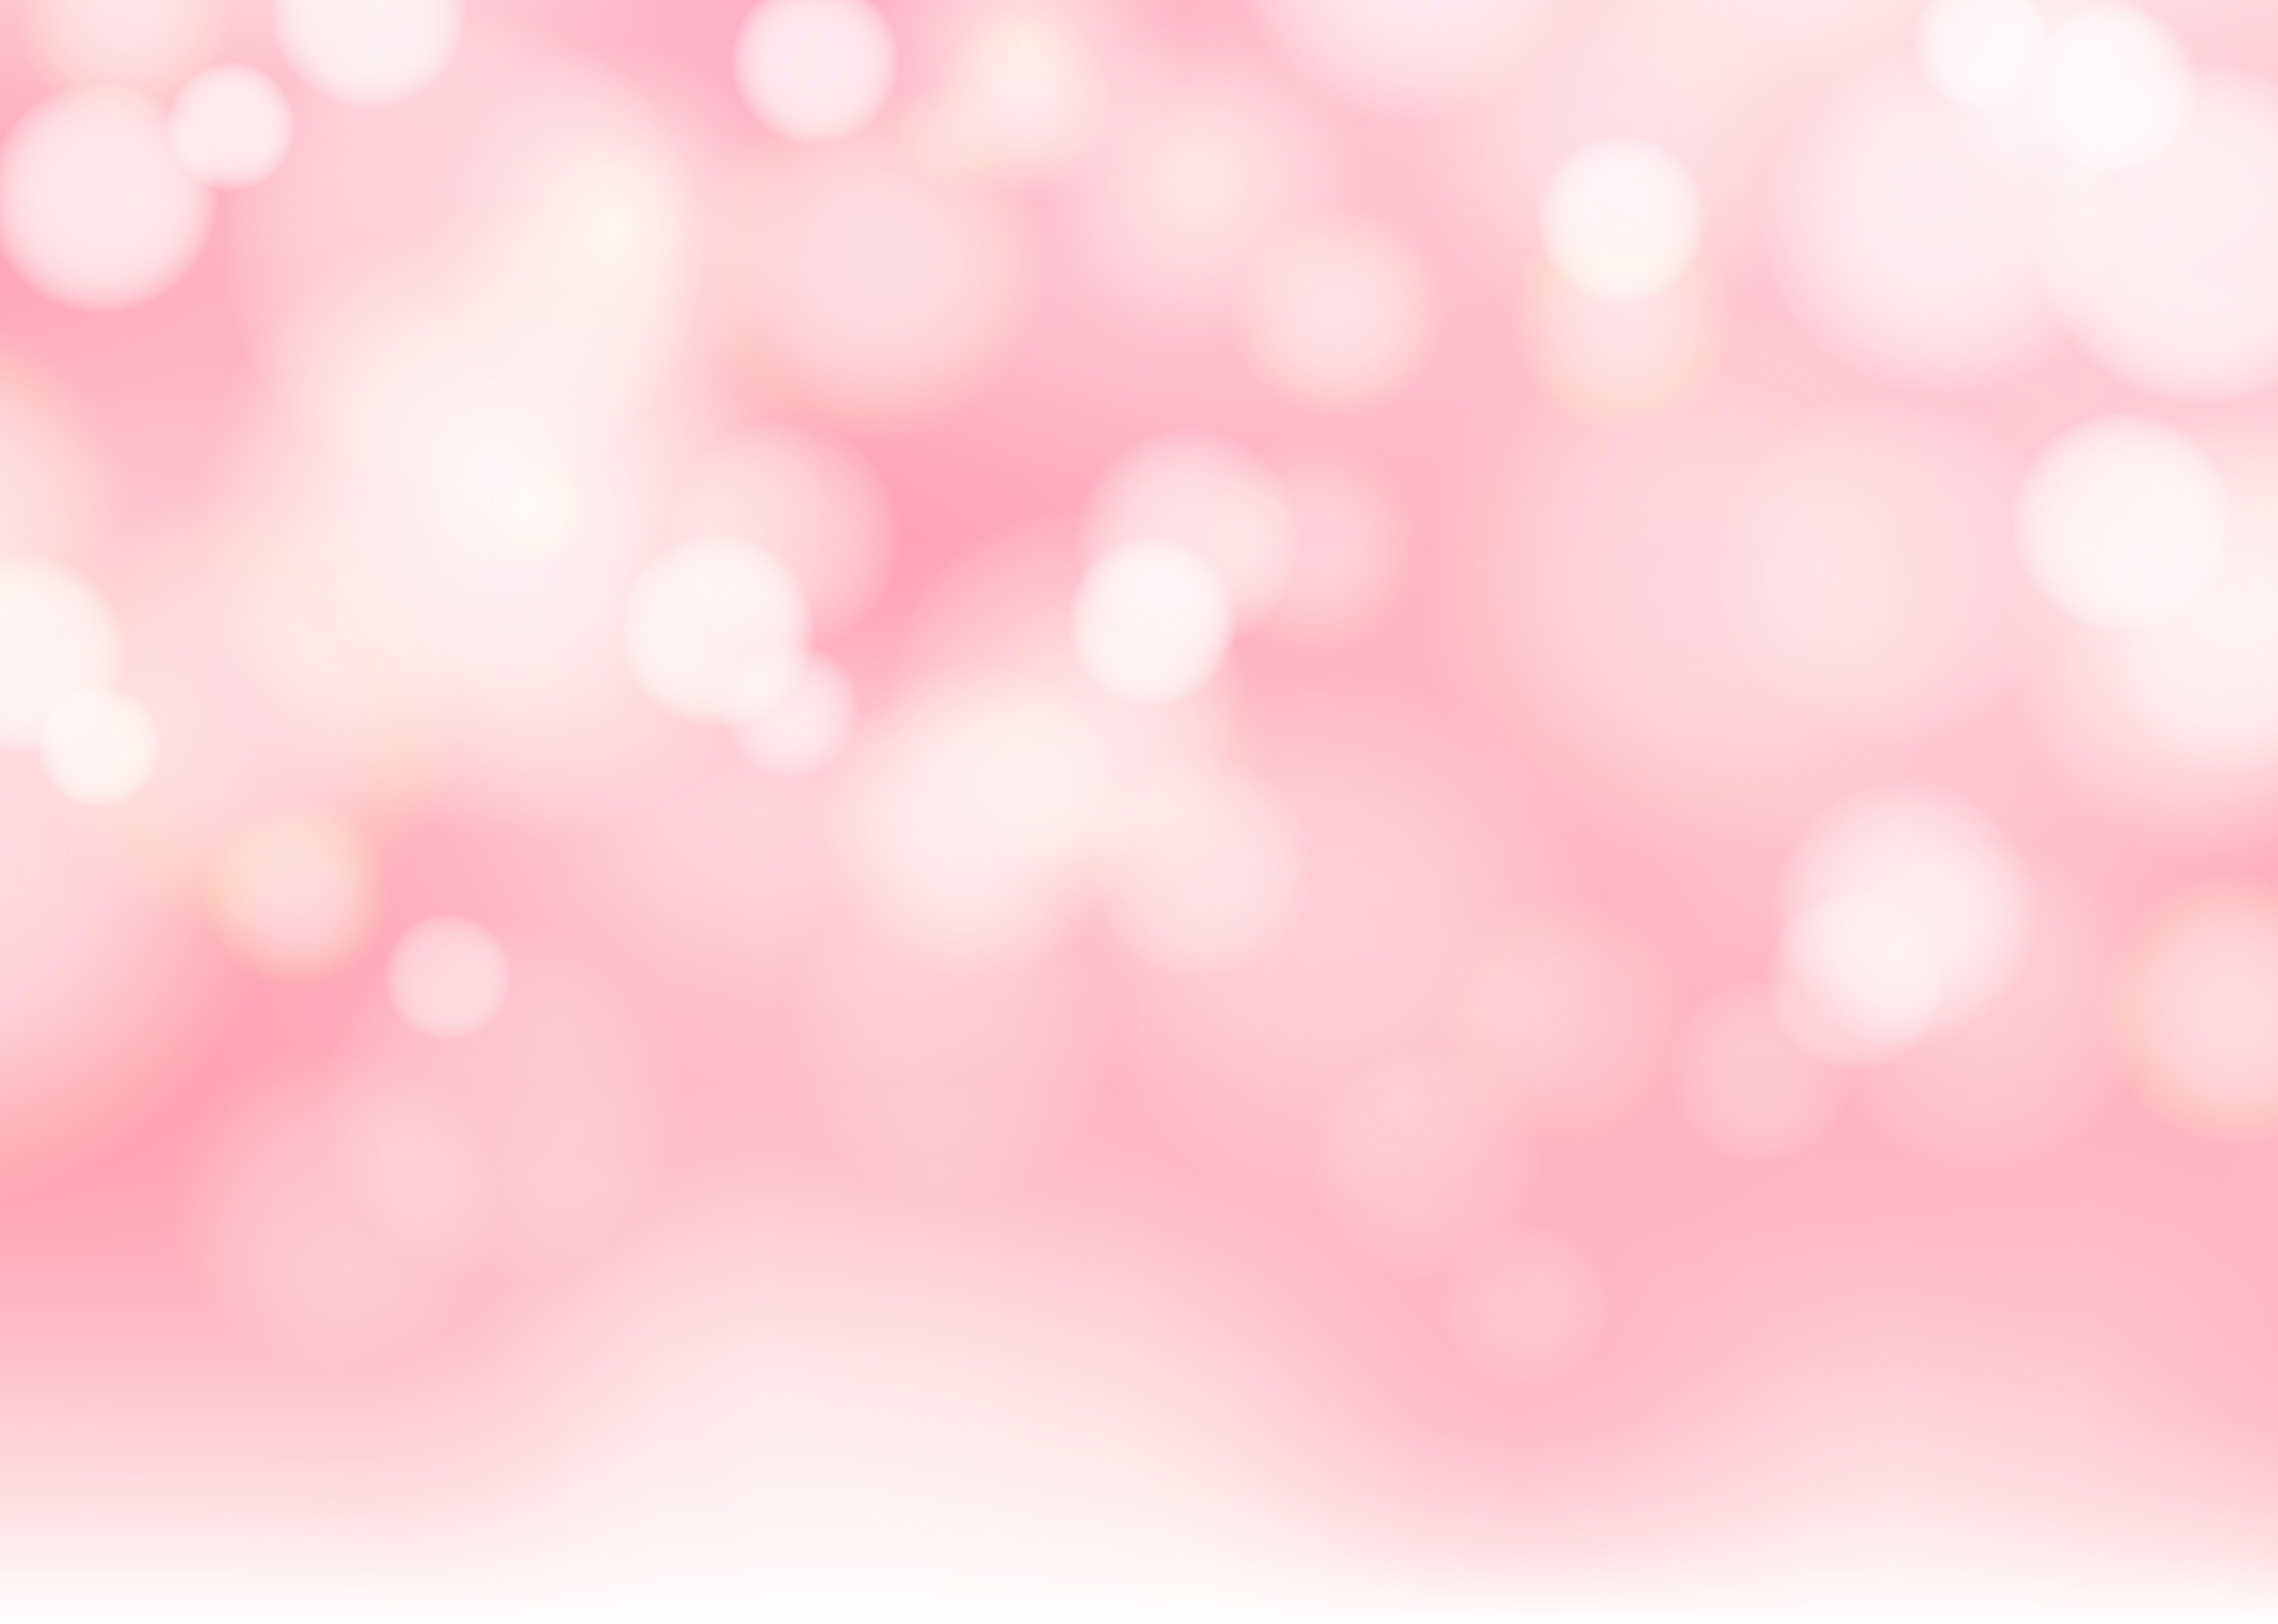 Abstract Blurred Soft Focus Bokeh Of Bright Pink Color